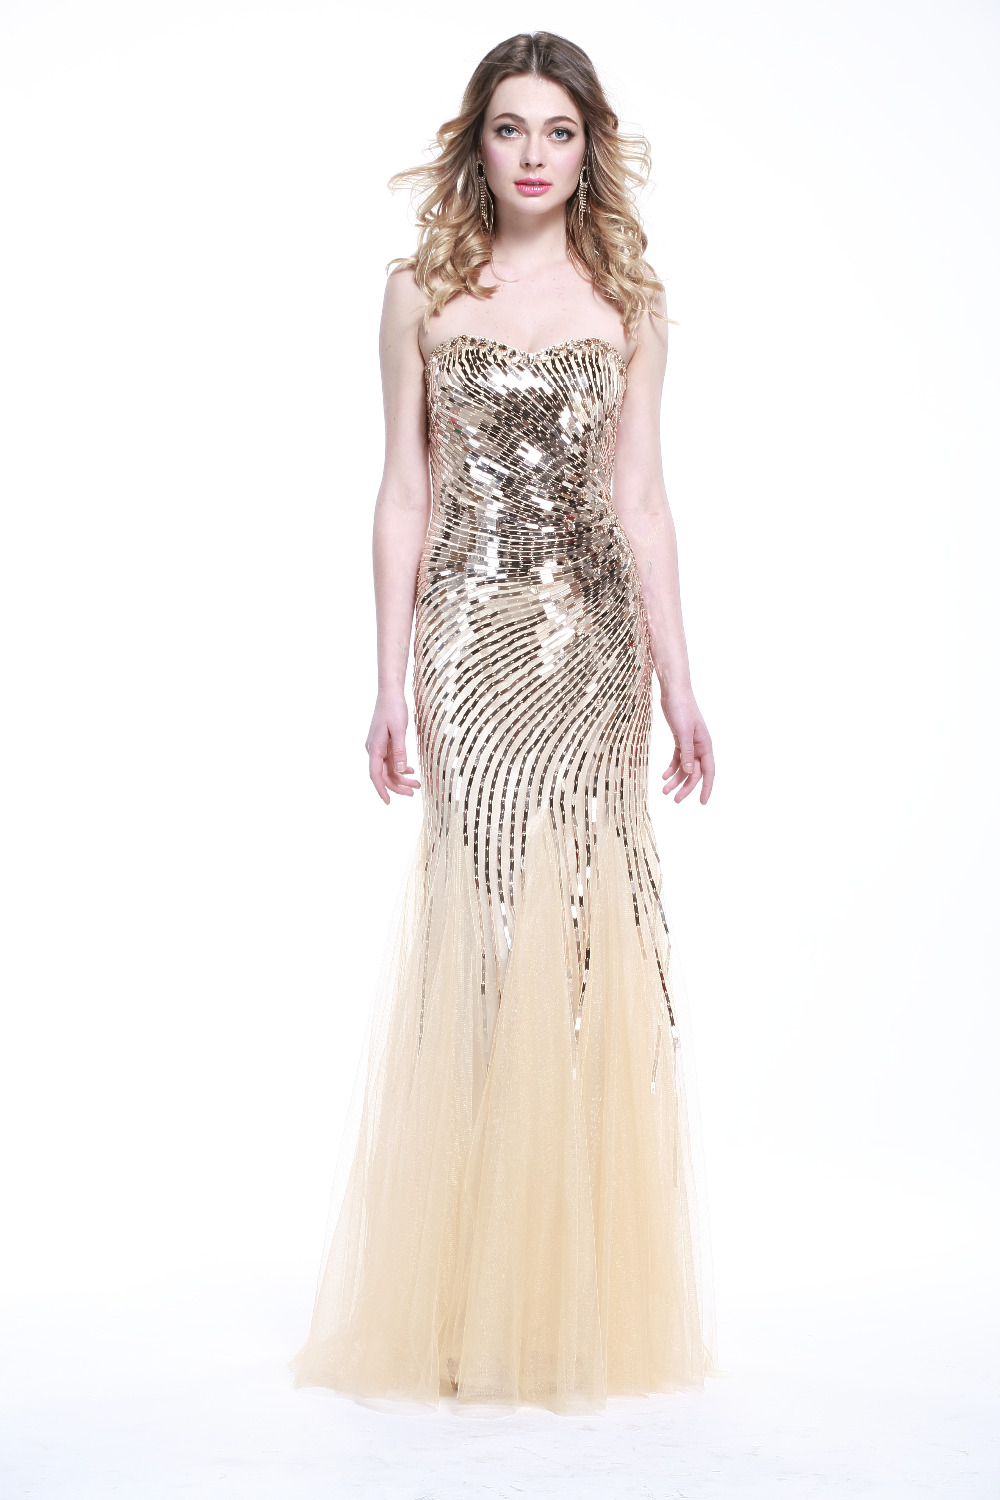 ffc219e48ad6 FM Hot Sale Strapless Sweetheart Off shoulder Sequined Crepe Champagne Sexy  Long Evening Dress Custom Made-in Prom Dresses from Weddings & Events on ...